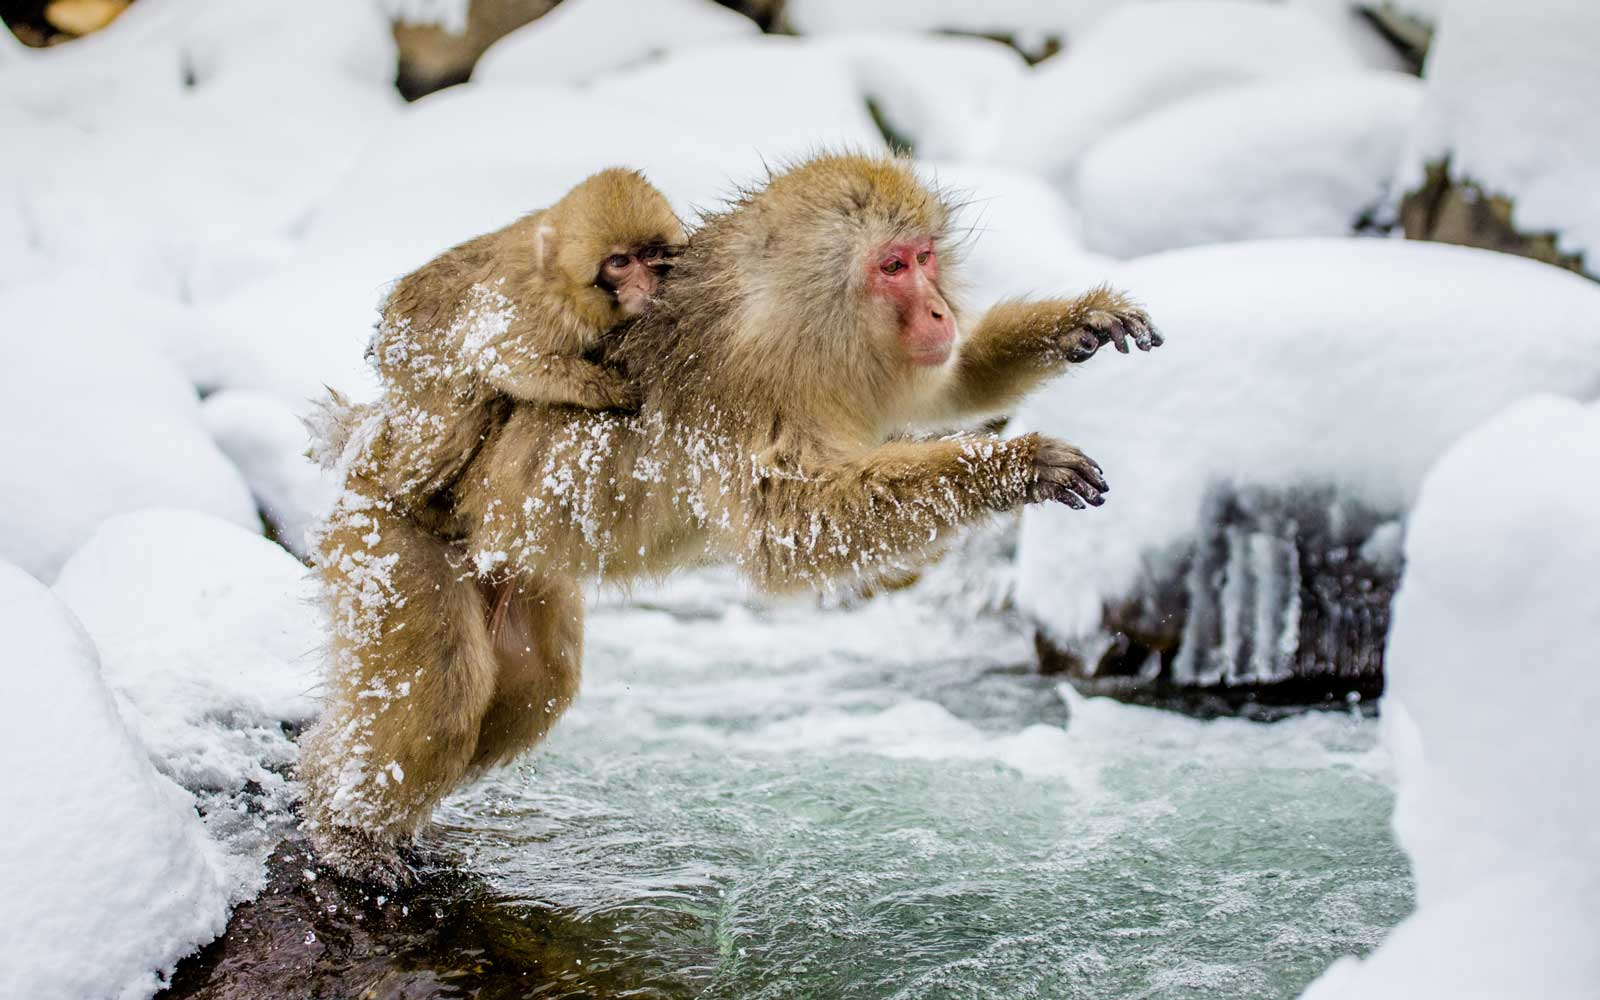 Japanese macaques jumping across a river in Jigokudani Monkey Park, in Japan